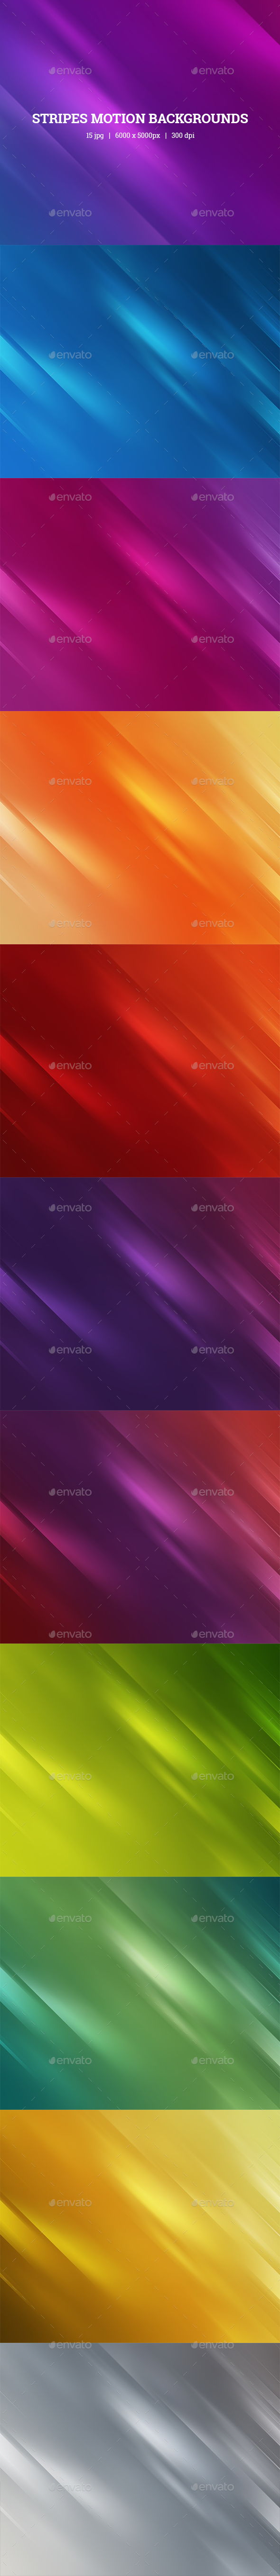 Stripes Motion Backgrounds - Backgrounds Graphics